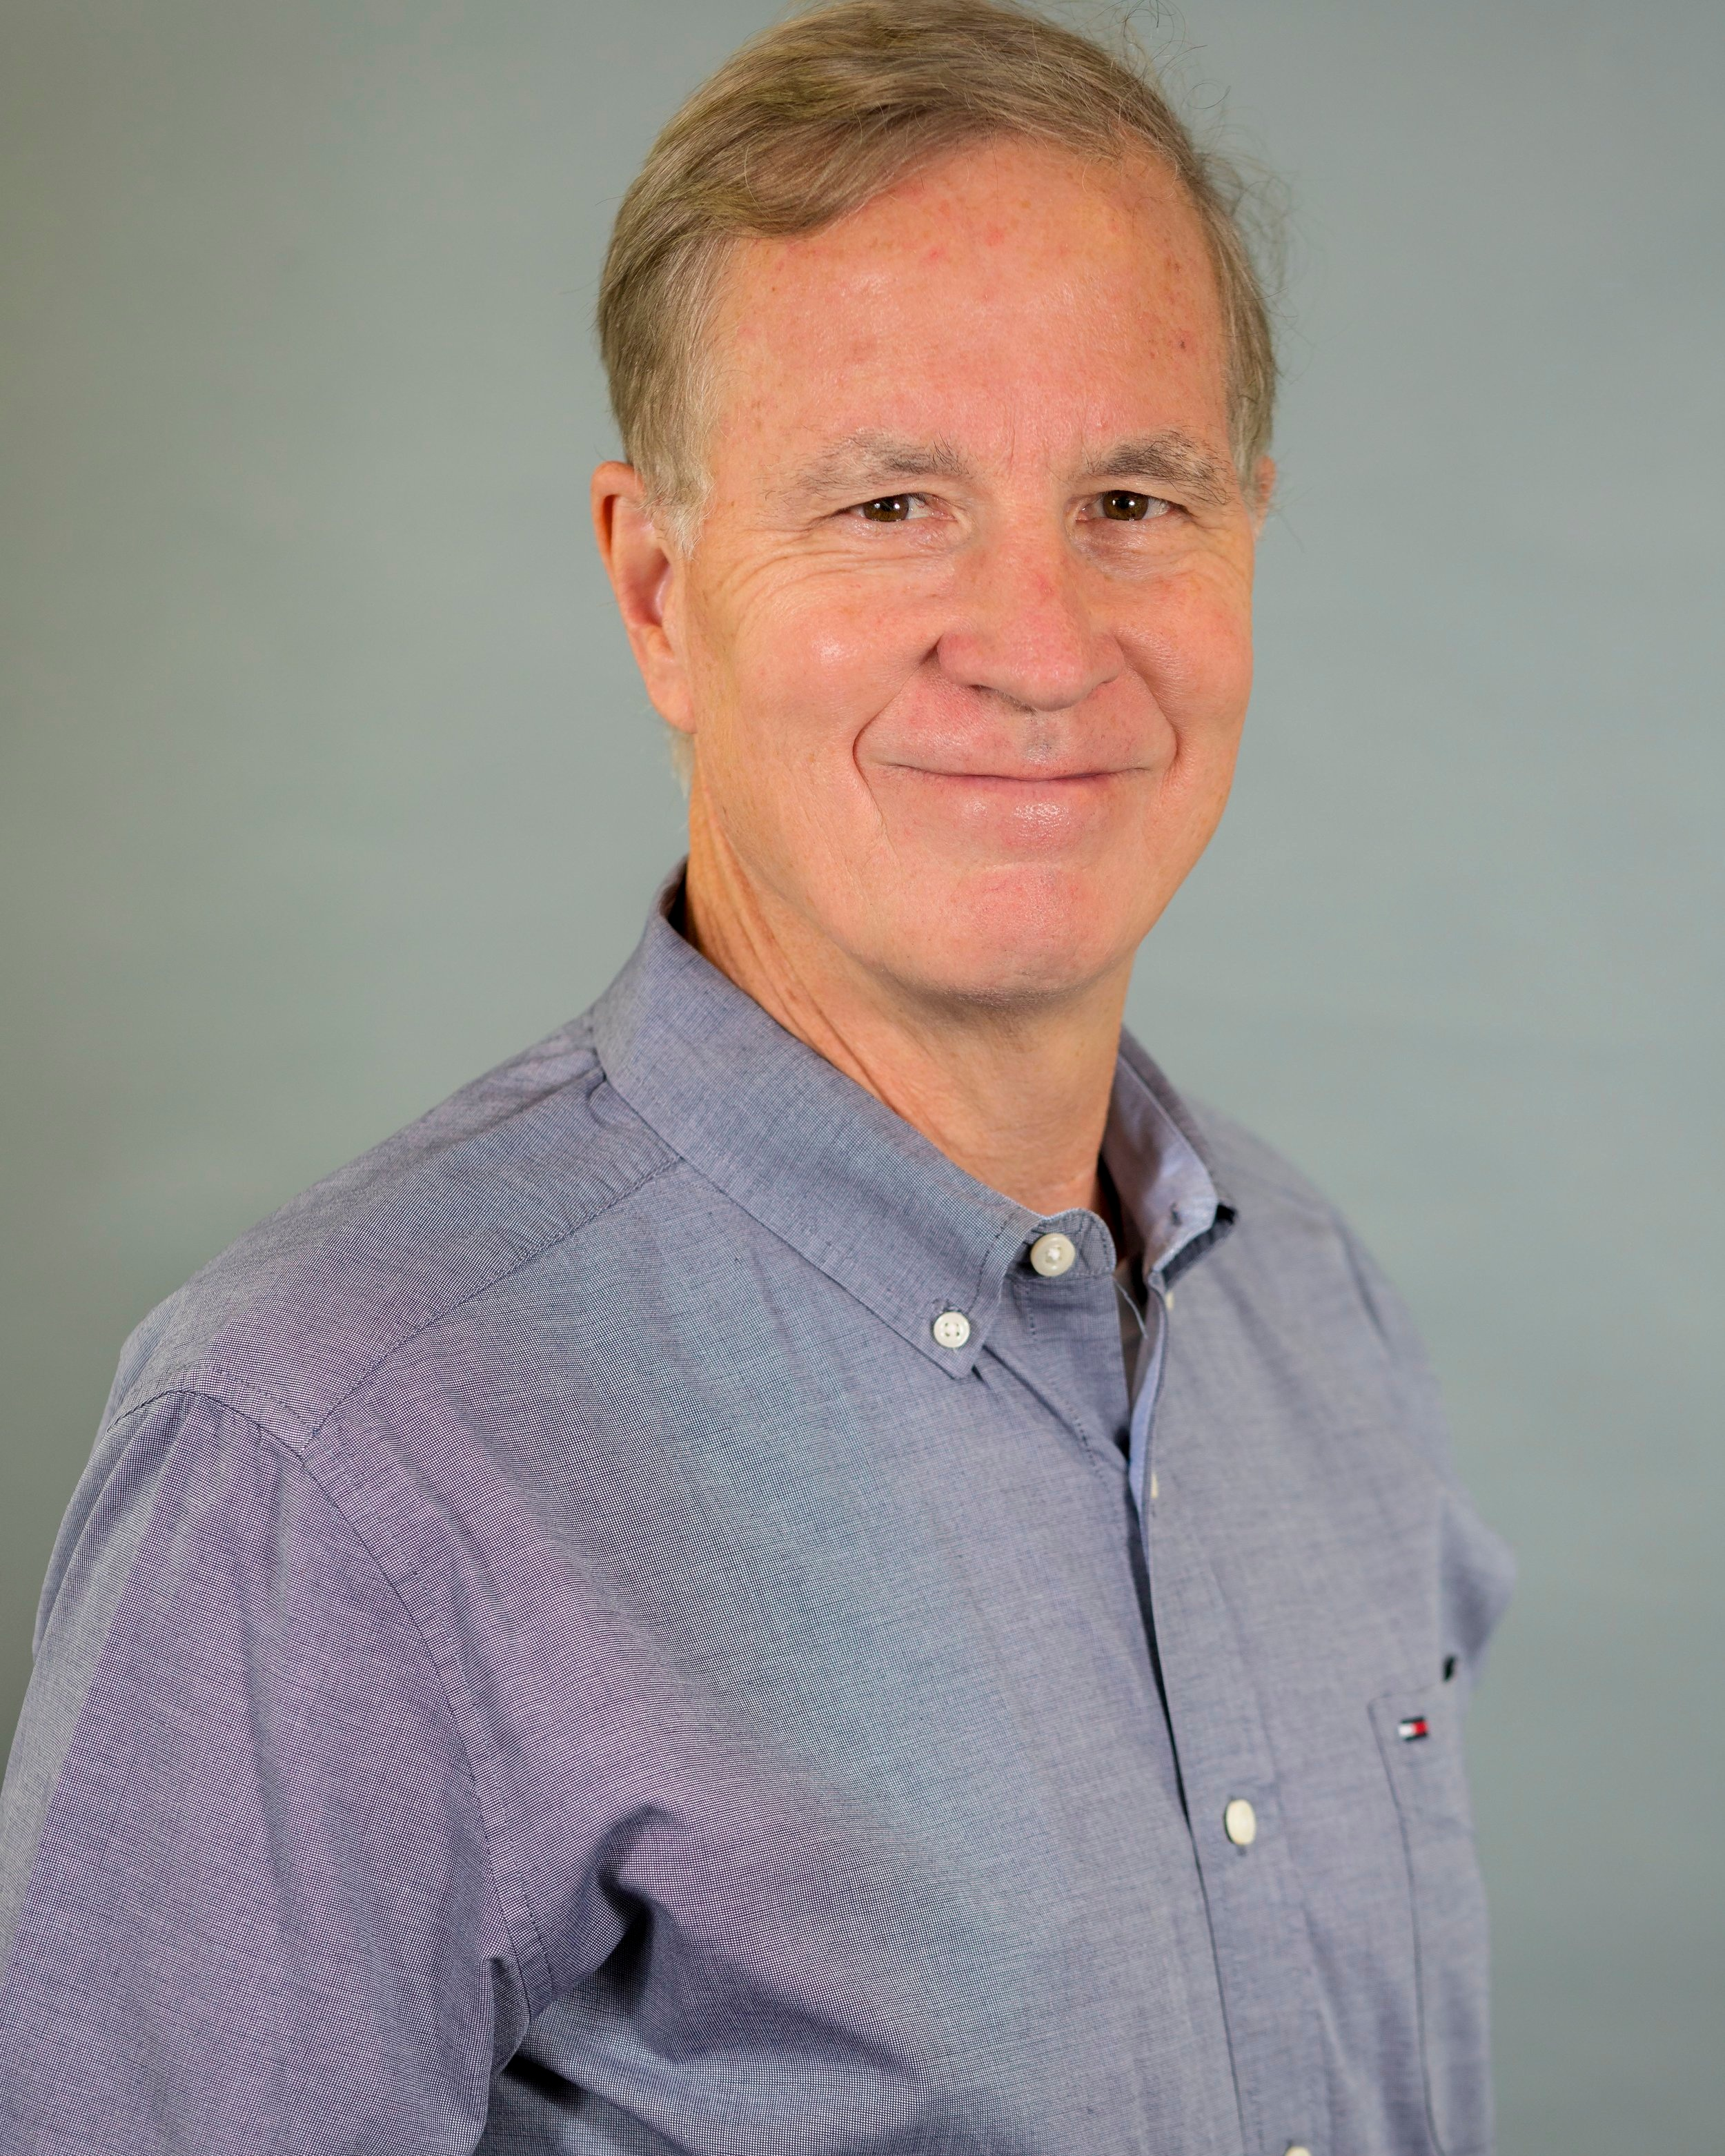 tony silber - Tony served on Trumbull P&Z from 2007- 2016 and was re-appointed to the board in 2019. He helped rewrite the zoning regulations in 2008 and led the 2014 update of the Plan of Conservation and Development. Tony believes development should conform to existing regulations or the POCD. He opposes creation of unusual new zones and supports transparency, including reform of text-amendment rules, which serve only developers.